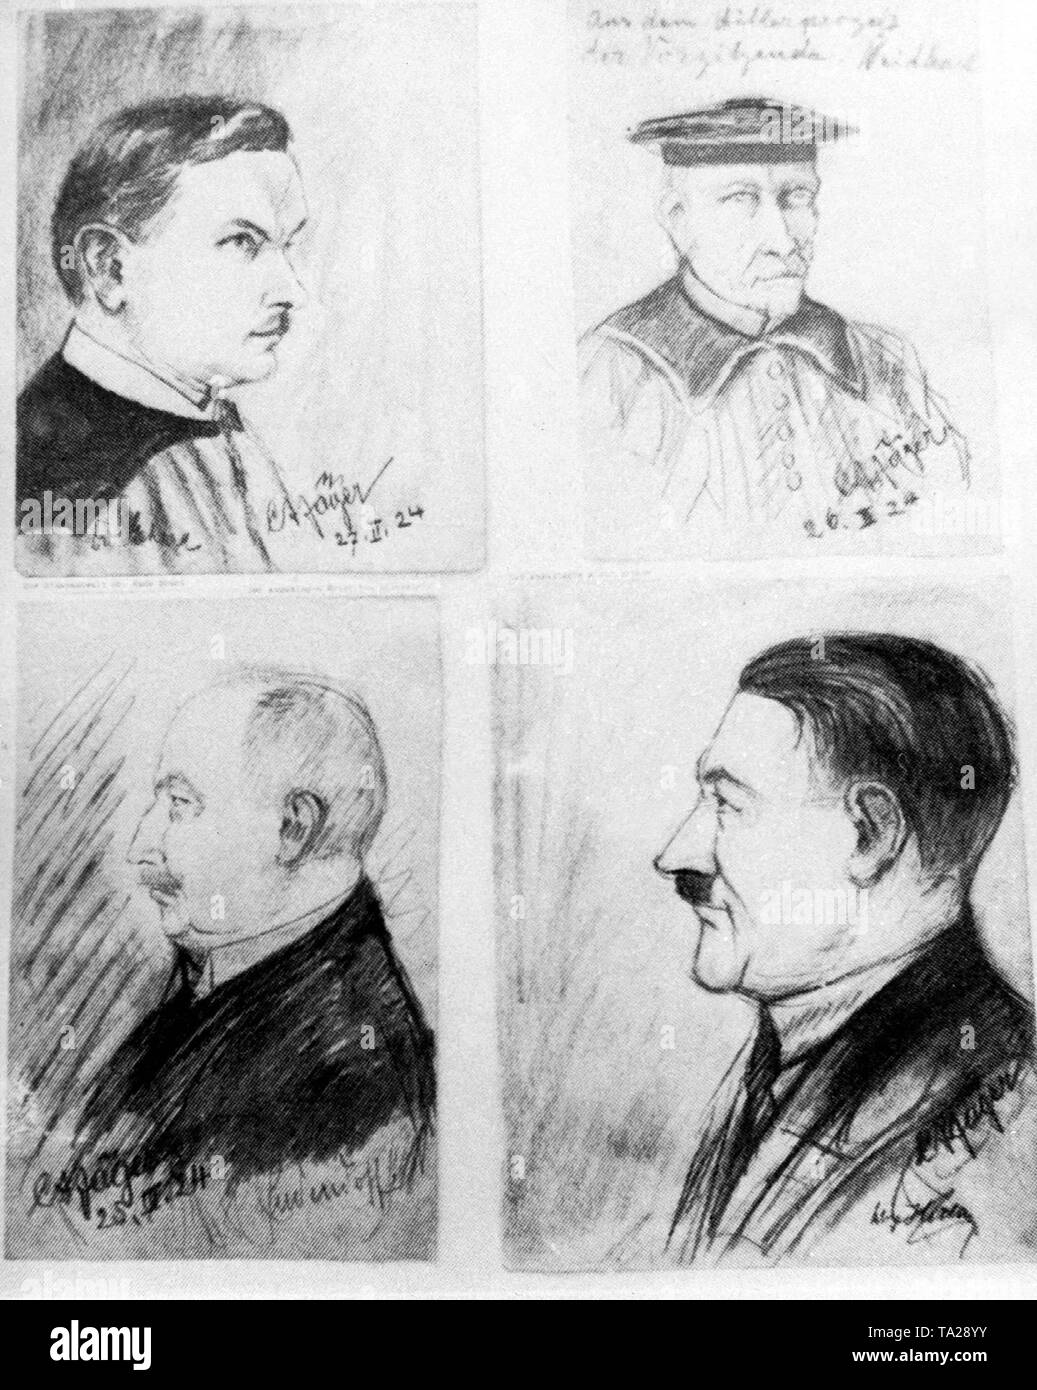 Trial of Adolf Hitler, who was charged with high treason due to his coup attempt in November 1923. Drawing of the main participants: Attorney and Prosecutor Hans Ehard (top left), the chairman of the court, state court director Georg Neithardt (top right), the accused General Erich Ludendorff (bottom left) and Adolf Hitler (bottom right). Stock Photo